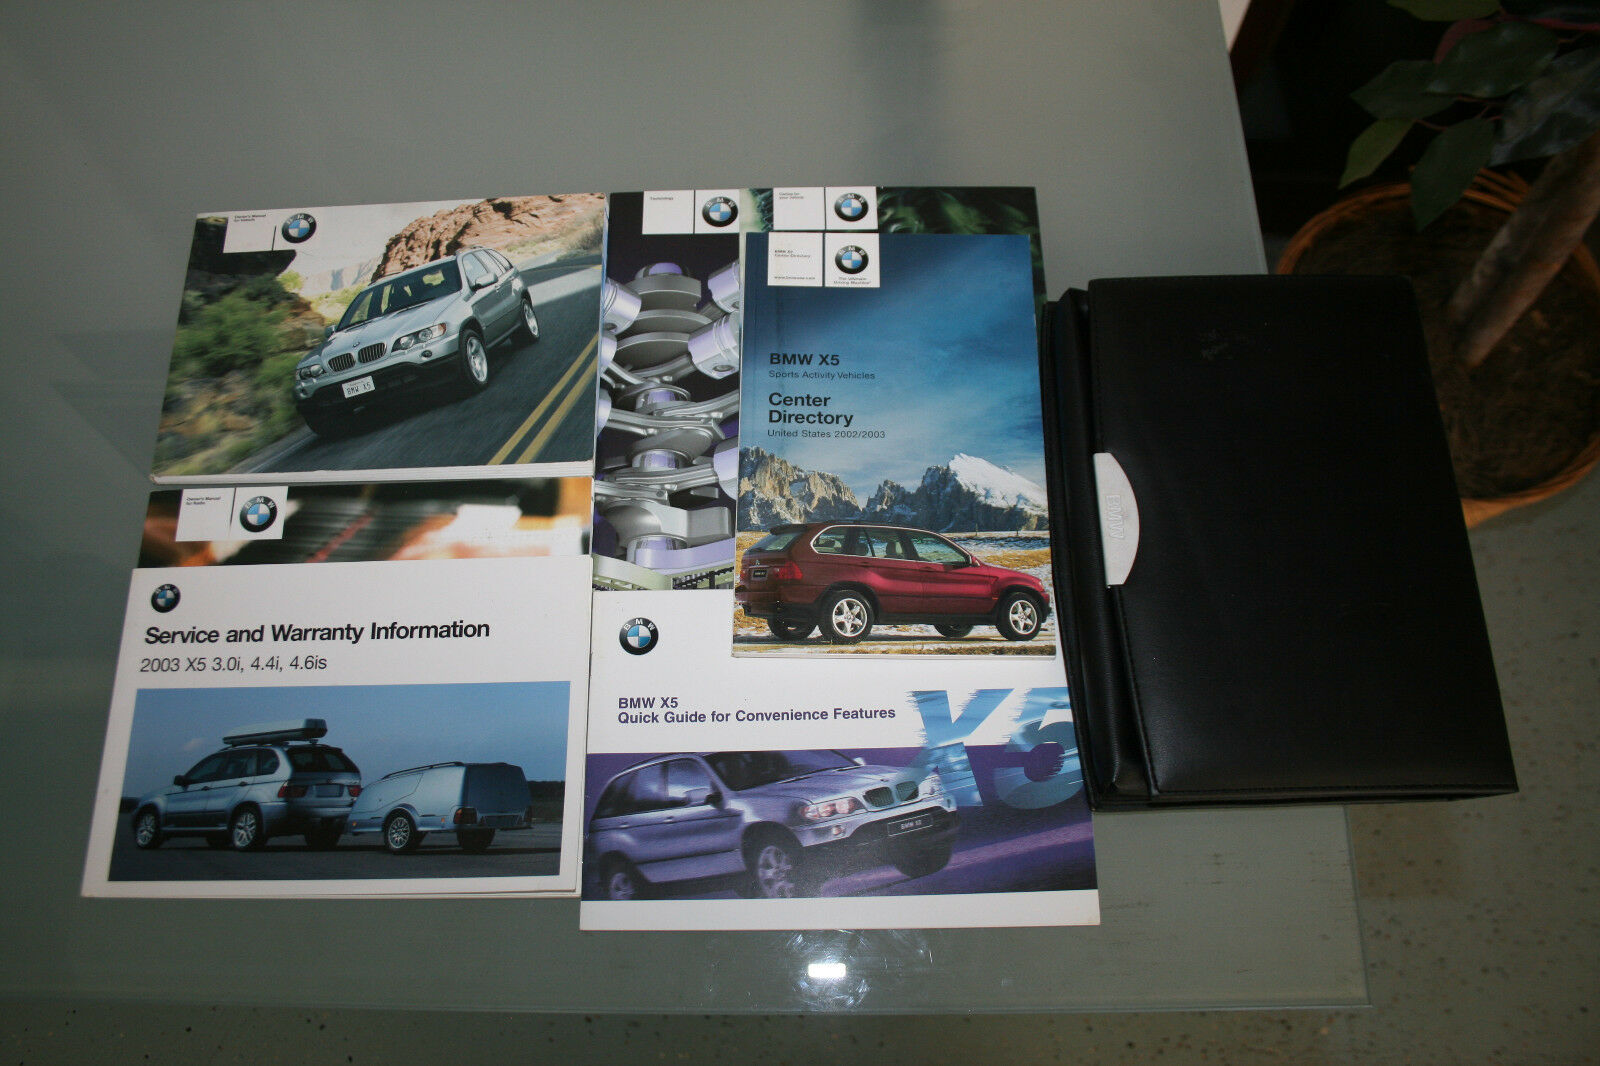 2003 BMW X5 Owners Manual Guide Booklets and Case 3.0i 4.4i 4.6is 3.0 1 of  1Only 1 available ...